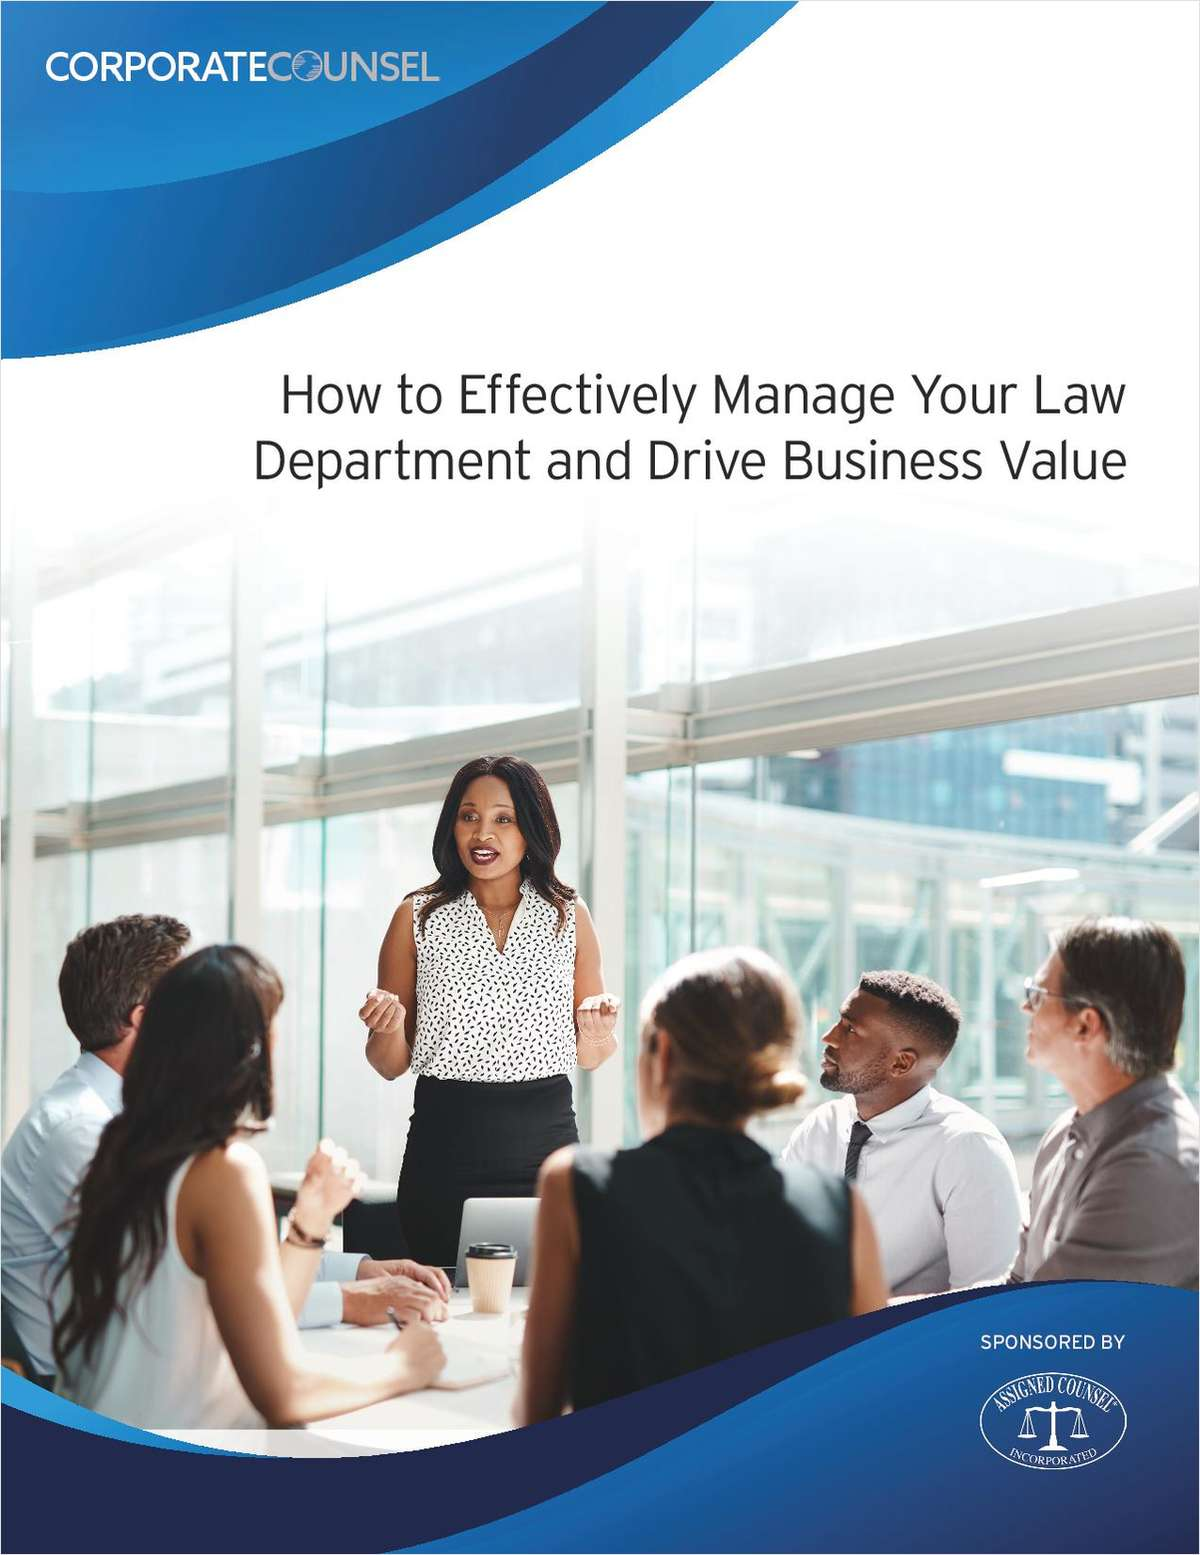 How to Effectively Manage Your Law Department and Drive Business Value